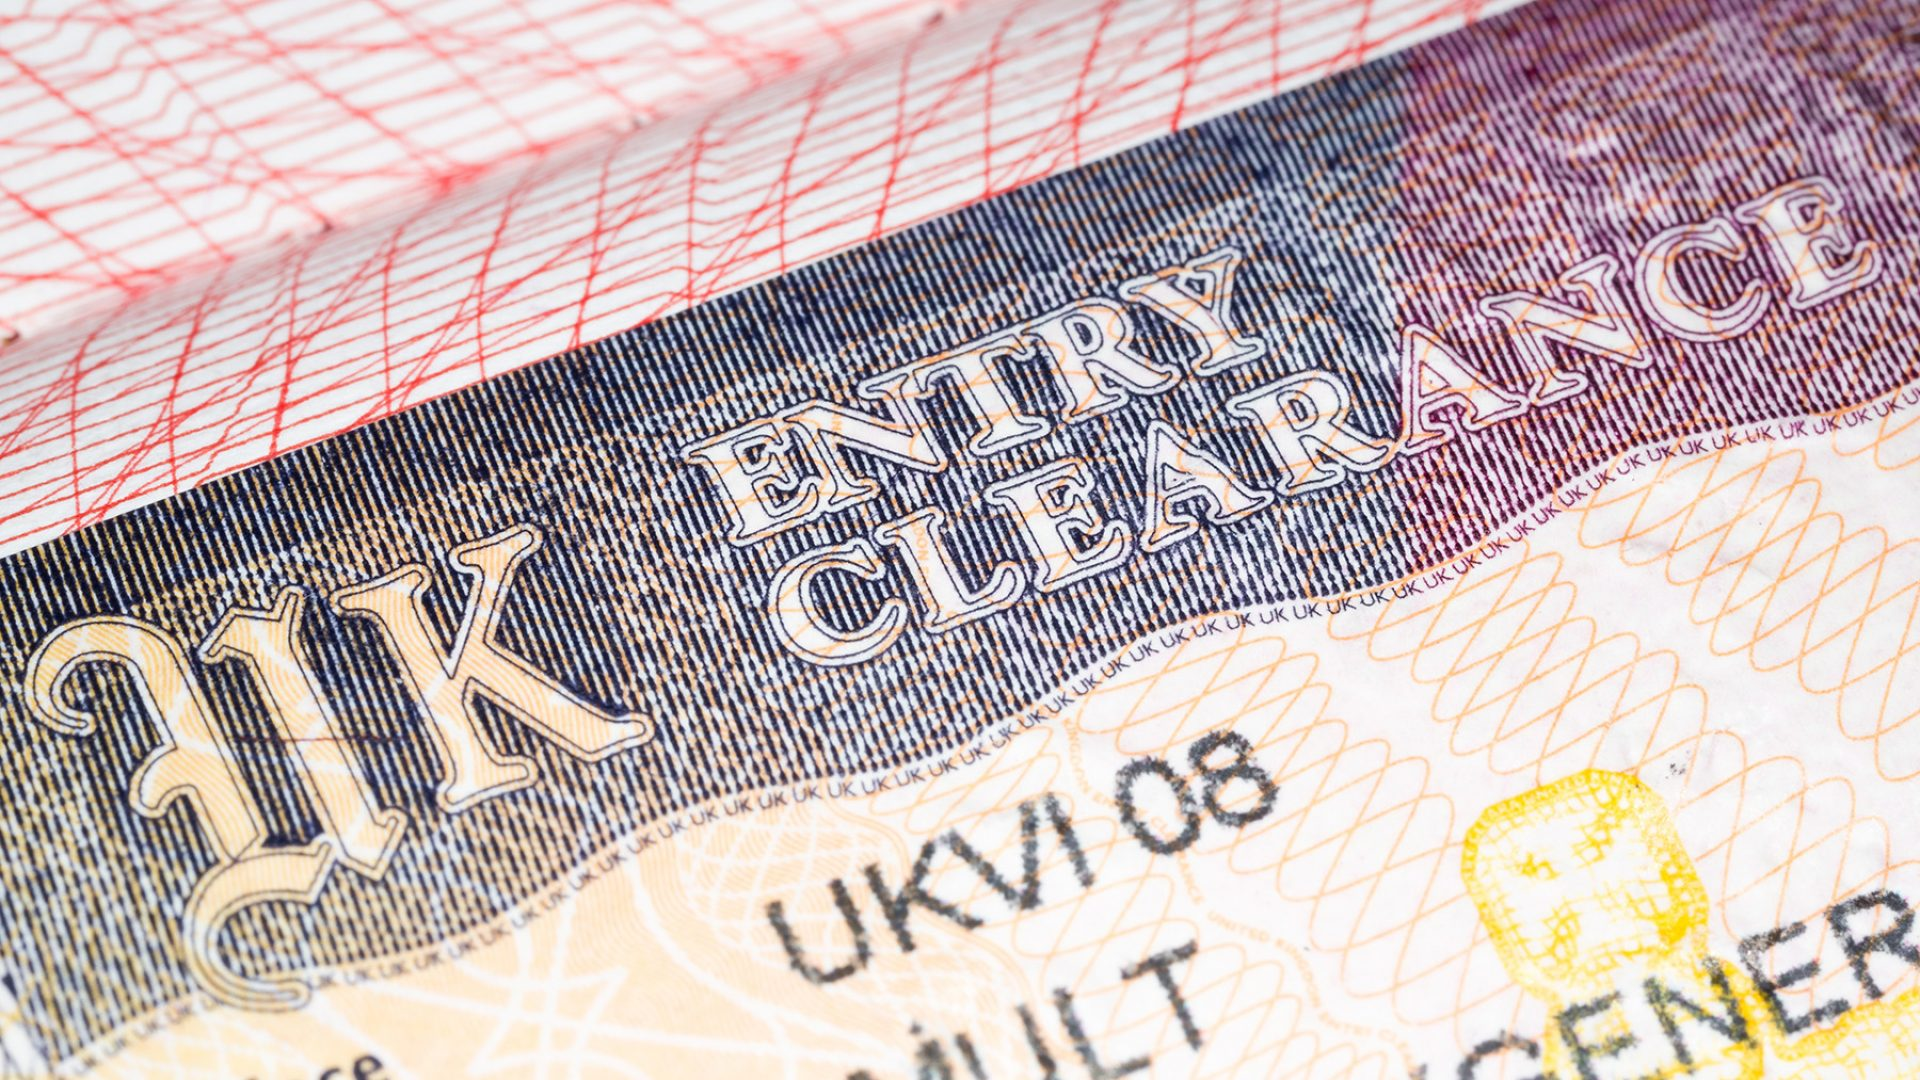 Visas and immigration in the UK